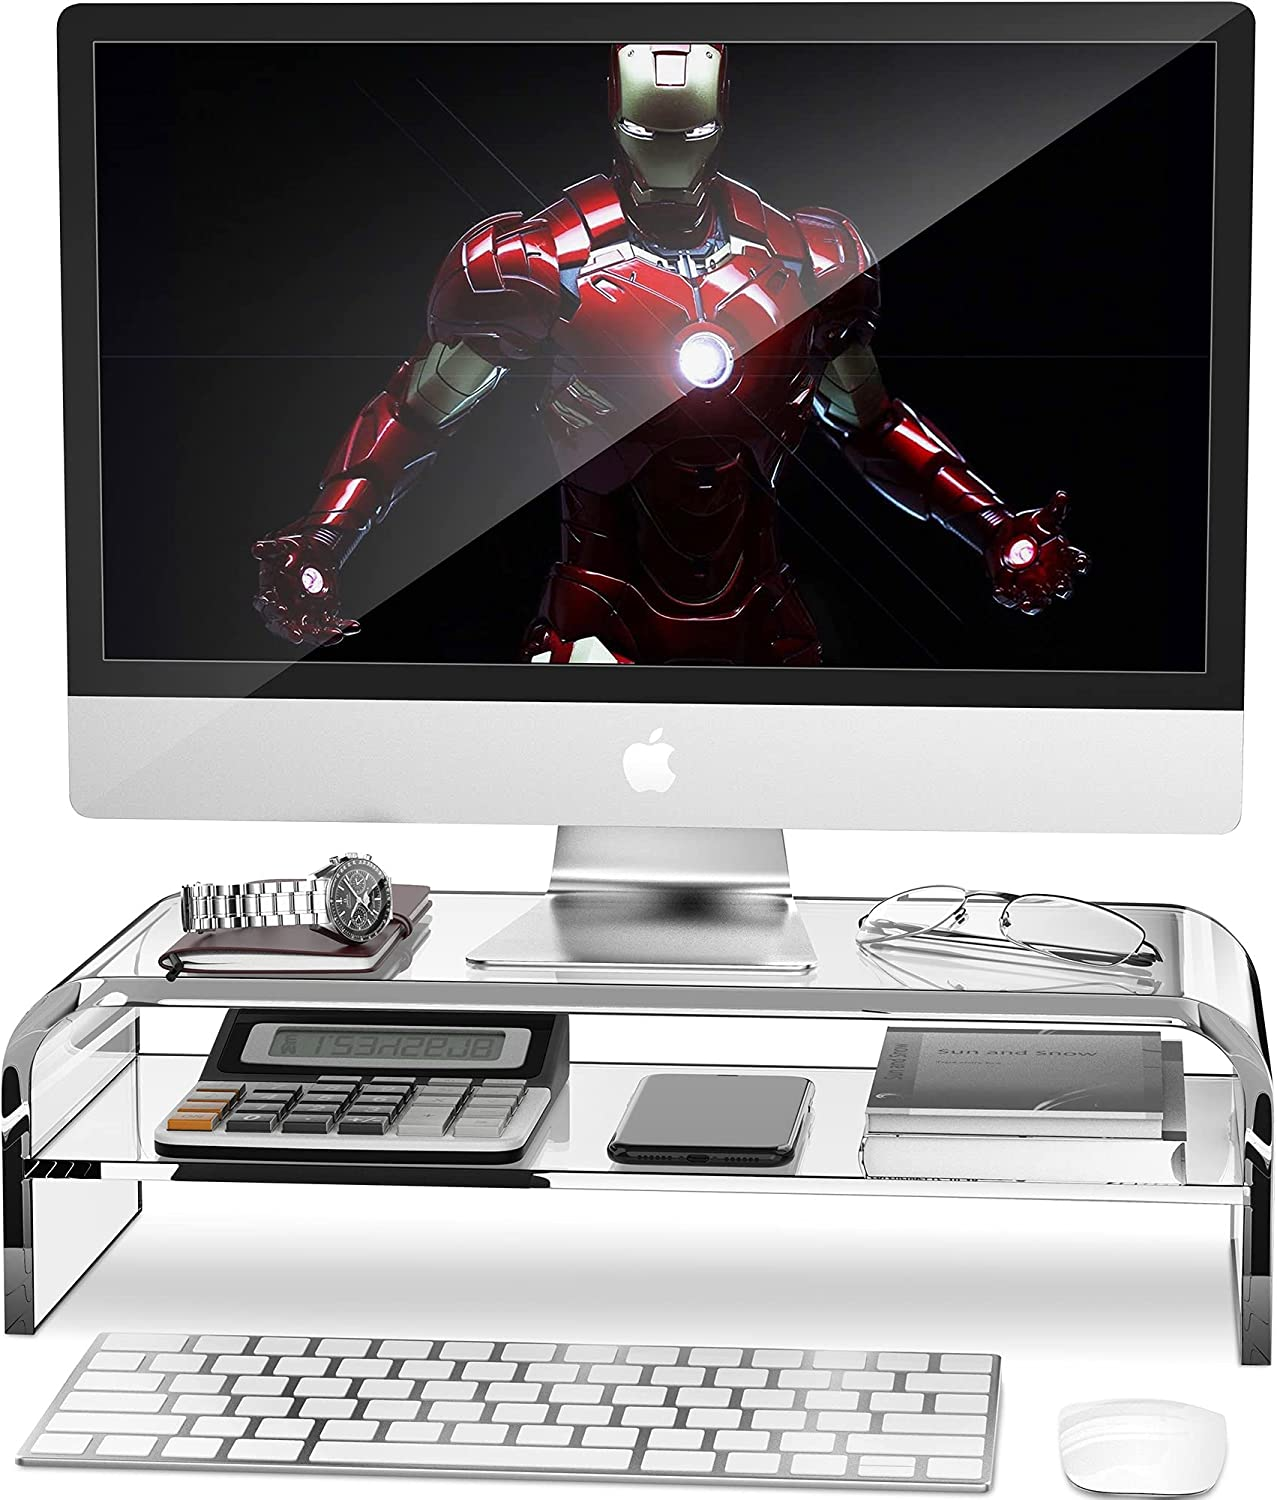 AboveTEK 2-Tier Acrylic Monitor Stand, Computer Riser for Home Office, Clear Monitor Riser for Keyboard Storage, 18.9